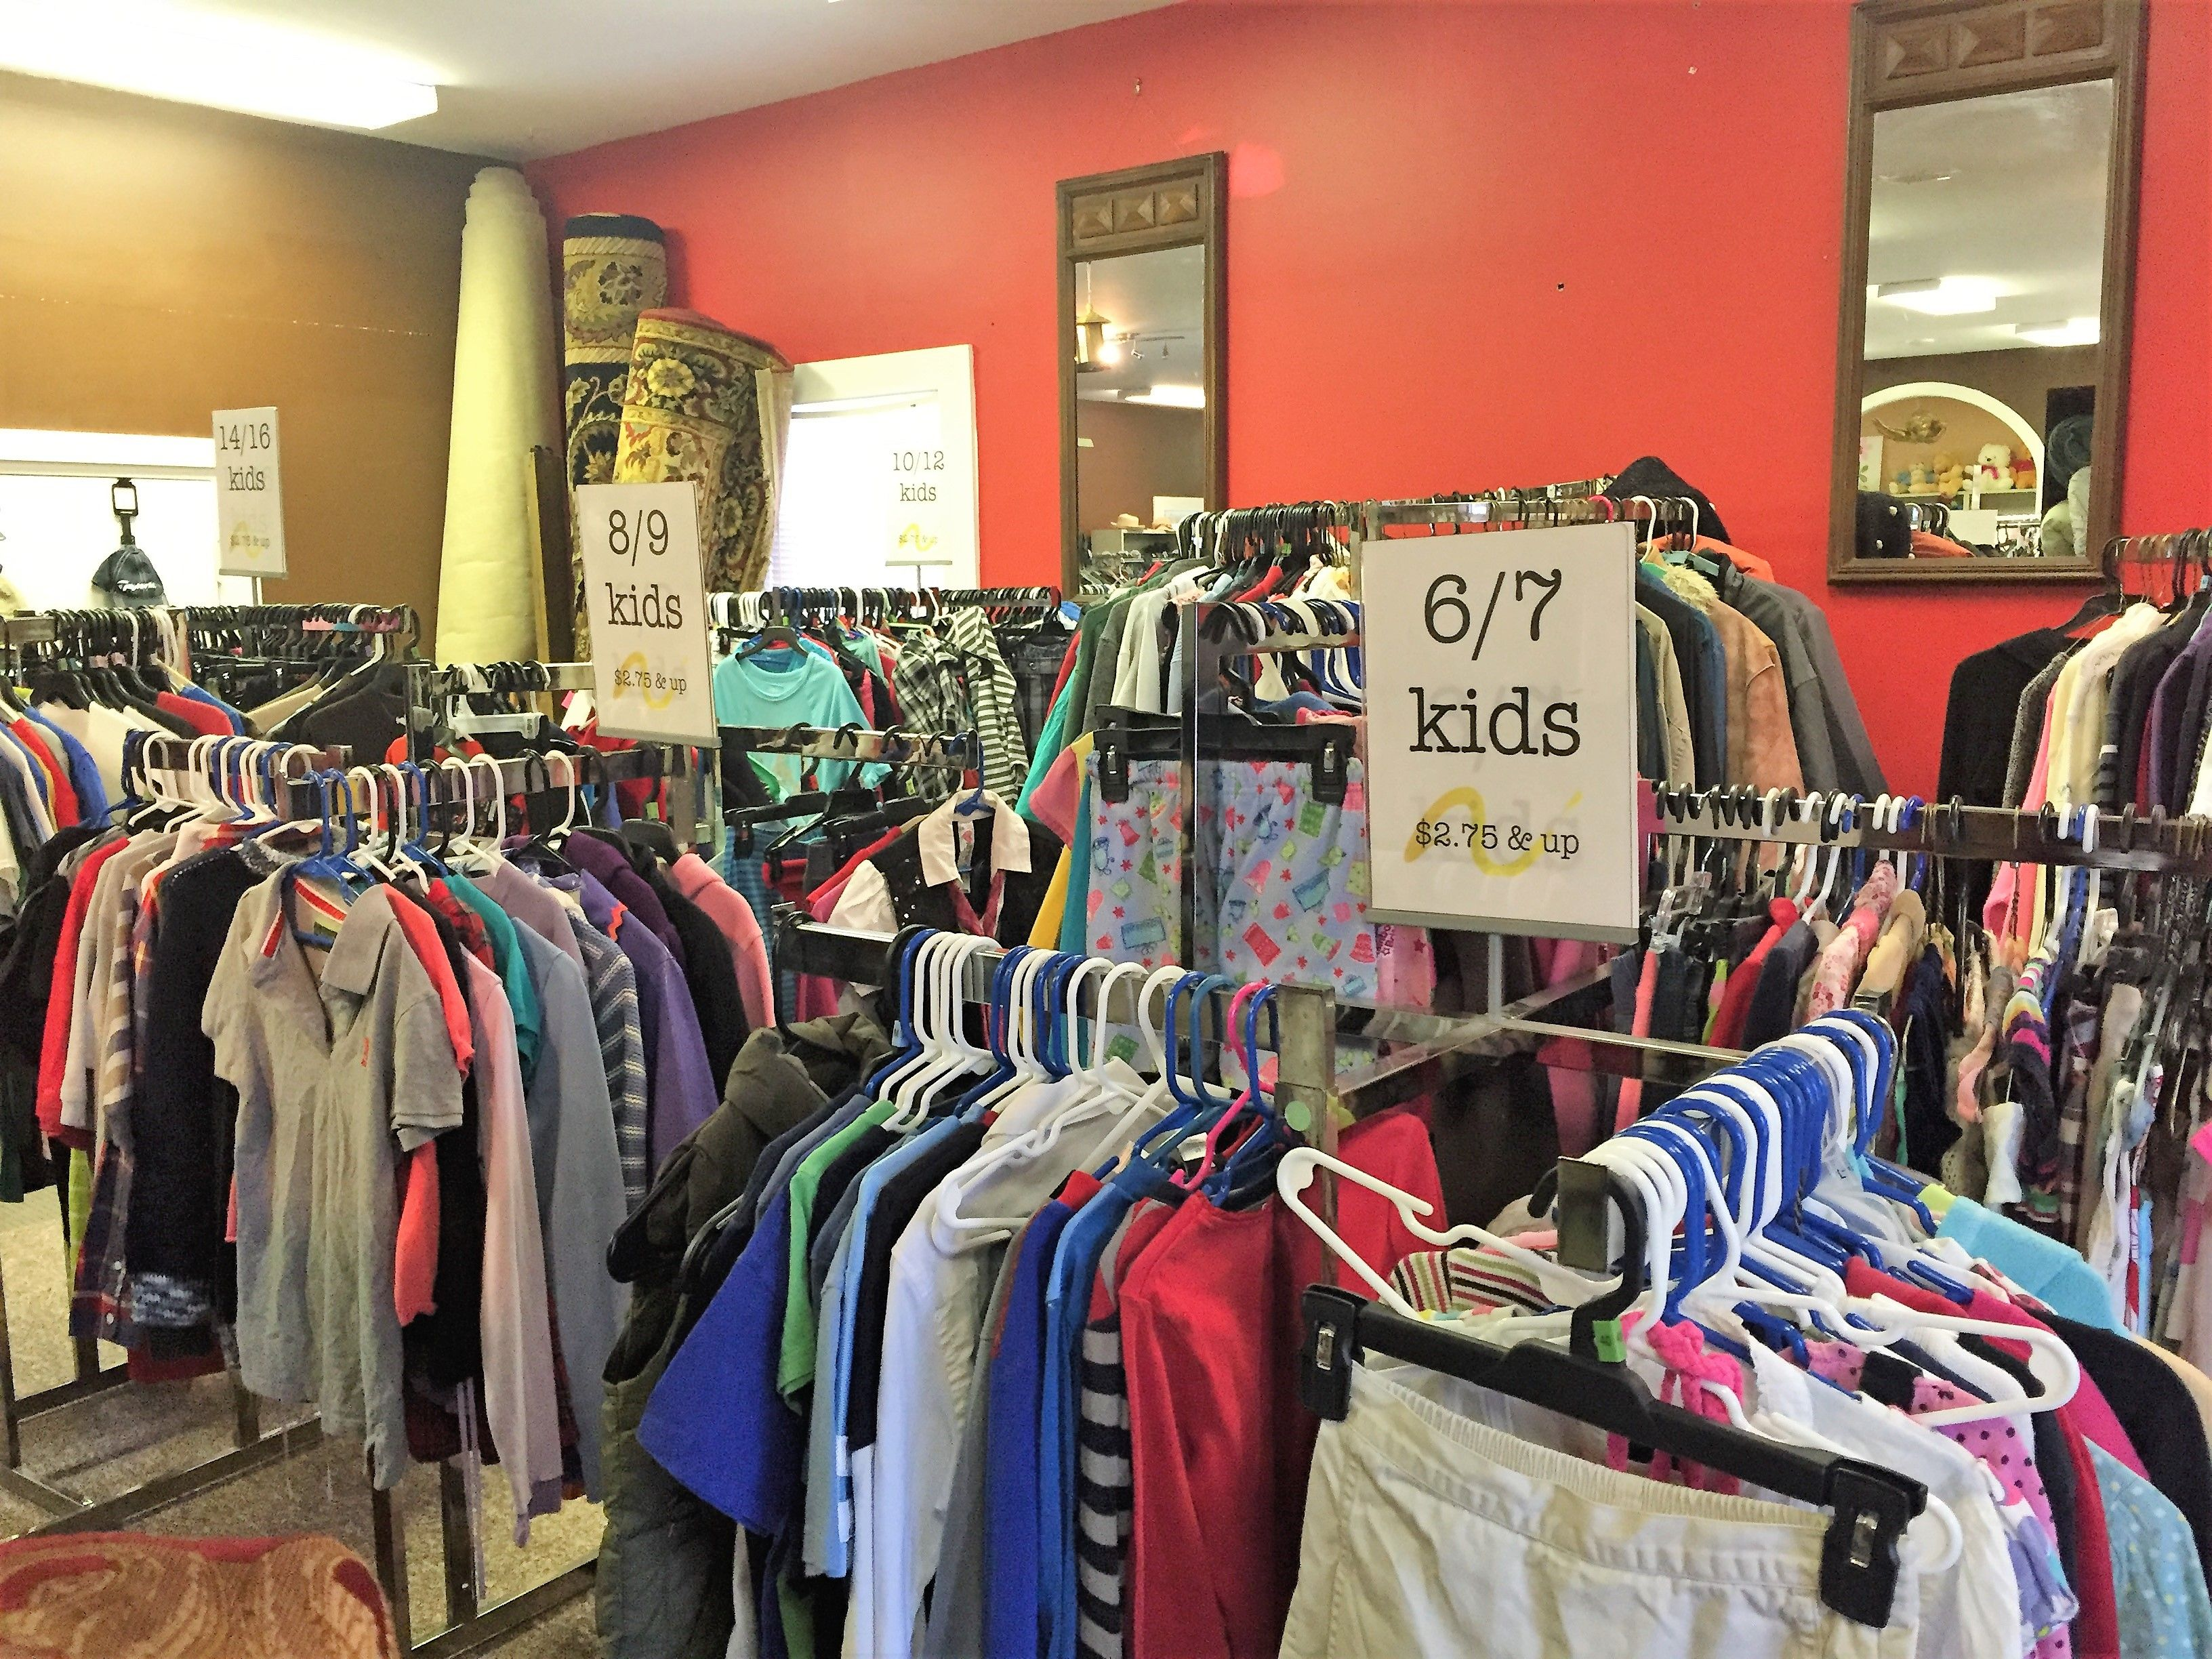 More kids clothes! Why spend a fortune when they grow out